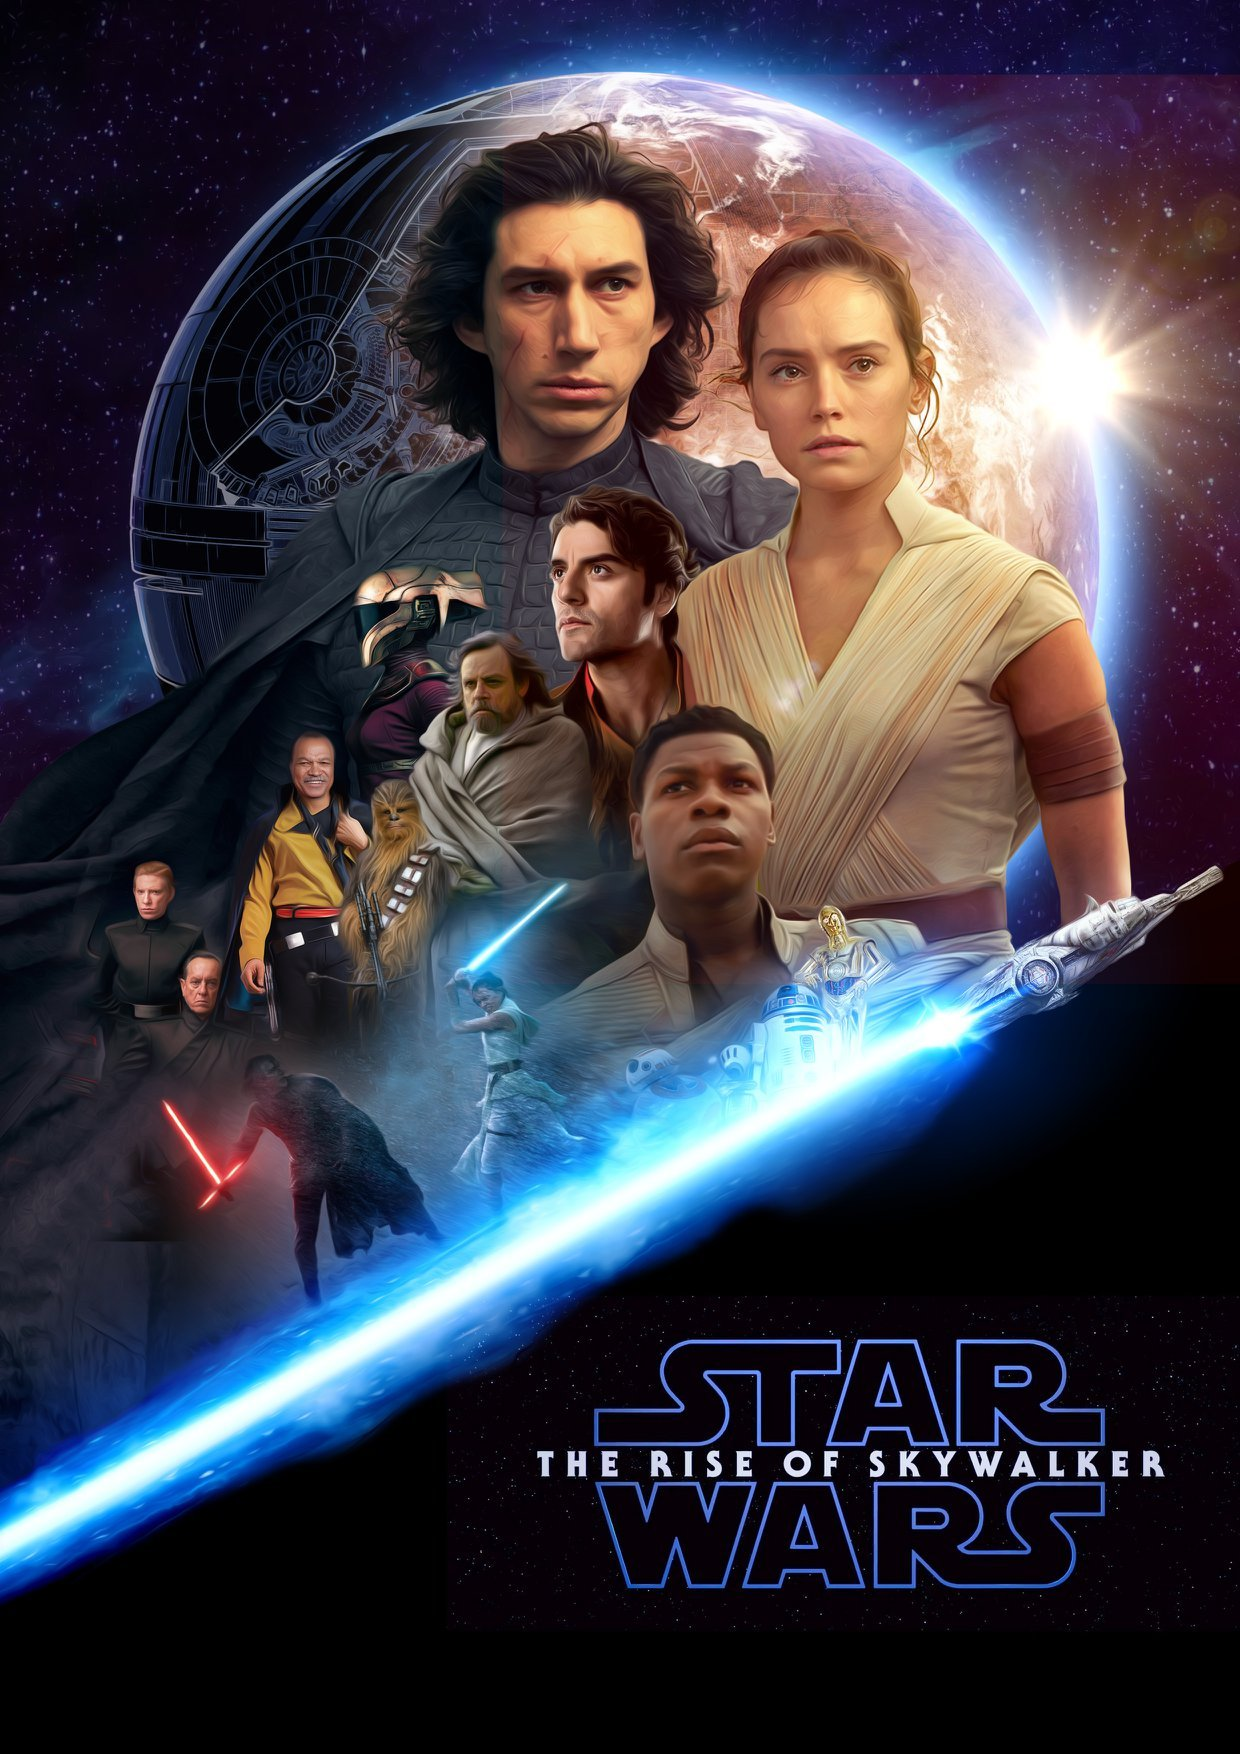 Star Wars The Rise Of Skywalker Fan Made Poster Darkside Creative